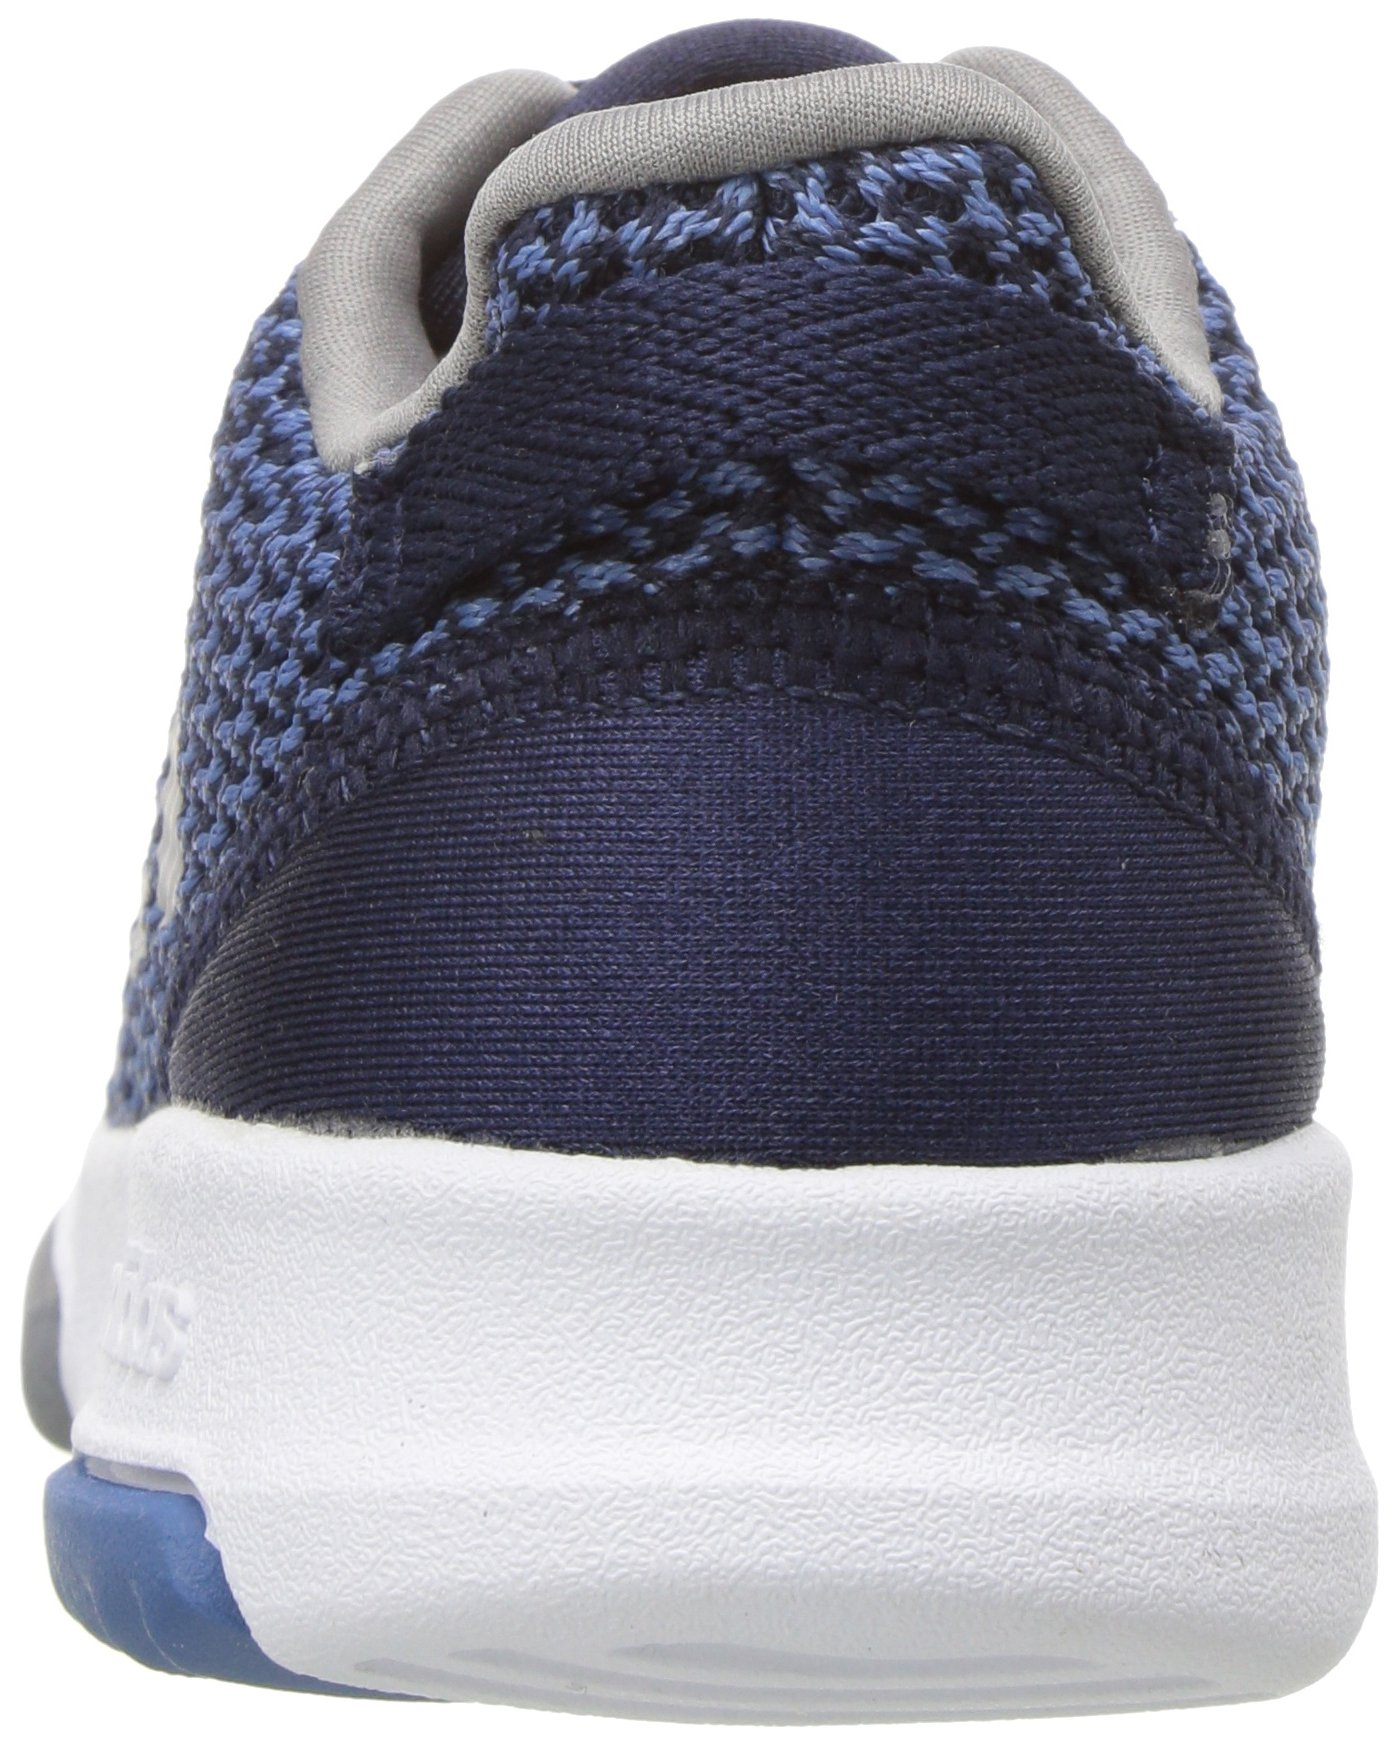 adidas Kids CF Racer TR Running Shoe, Collegiate Navy/Collegiate Navy/Grey, 5K M US Toddler by adidas (Image #2)